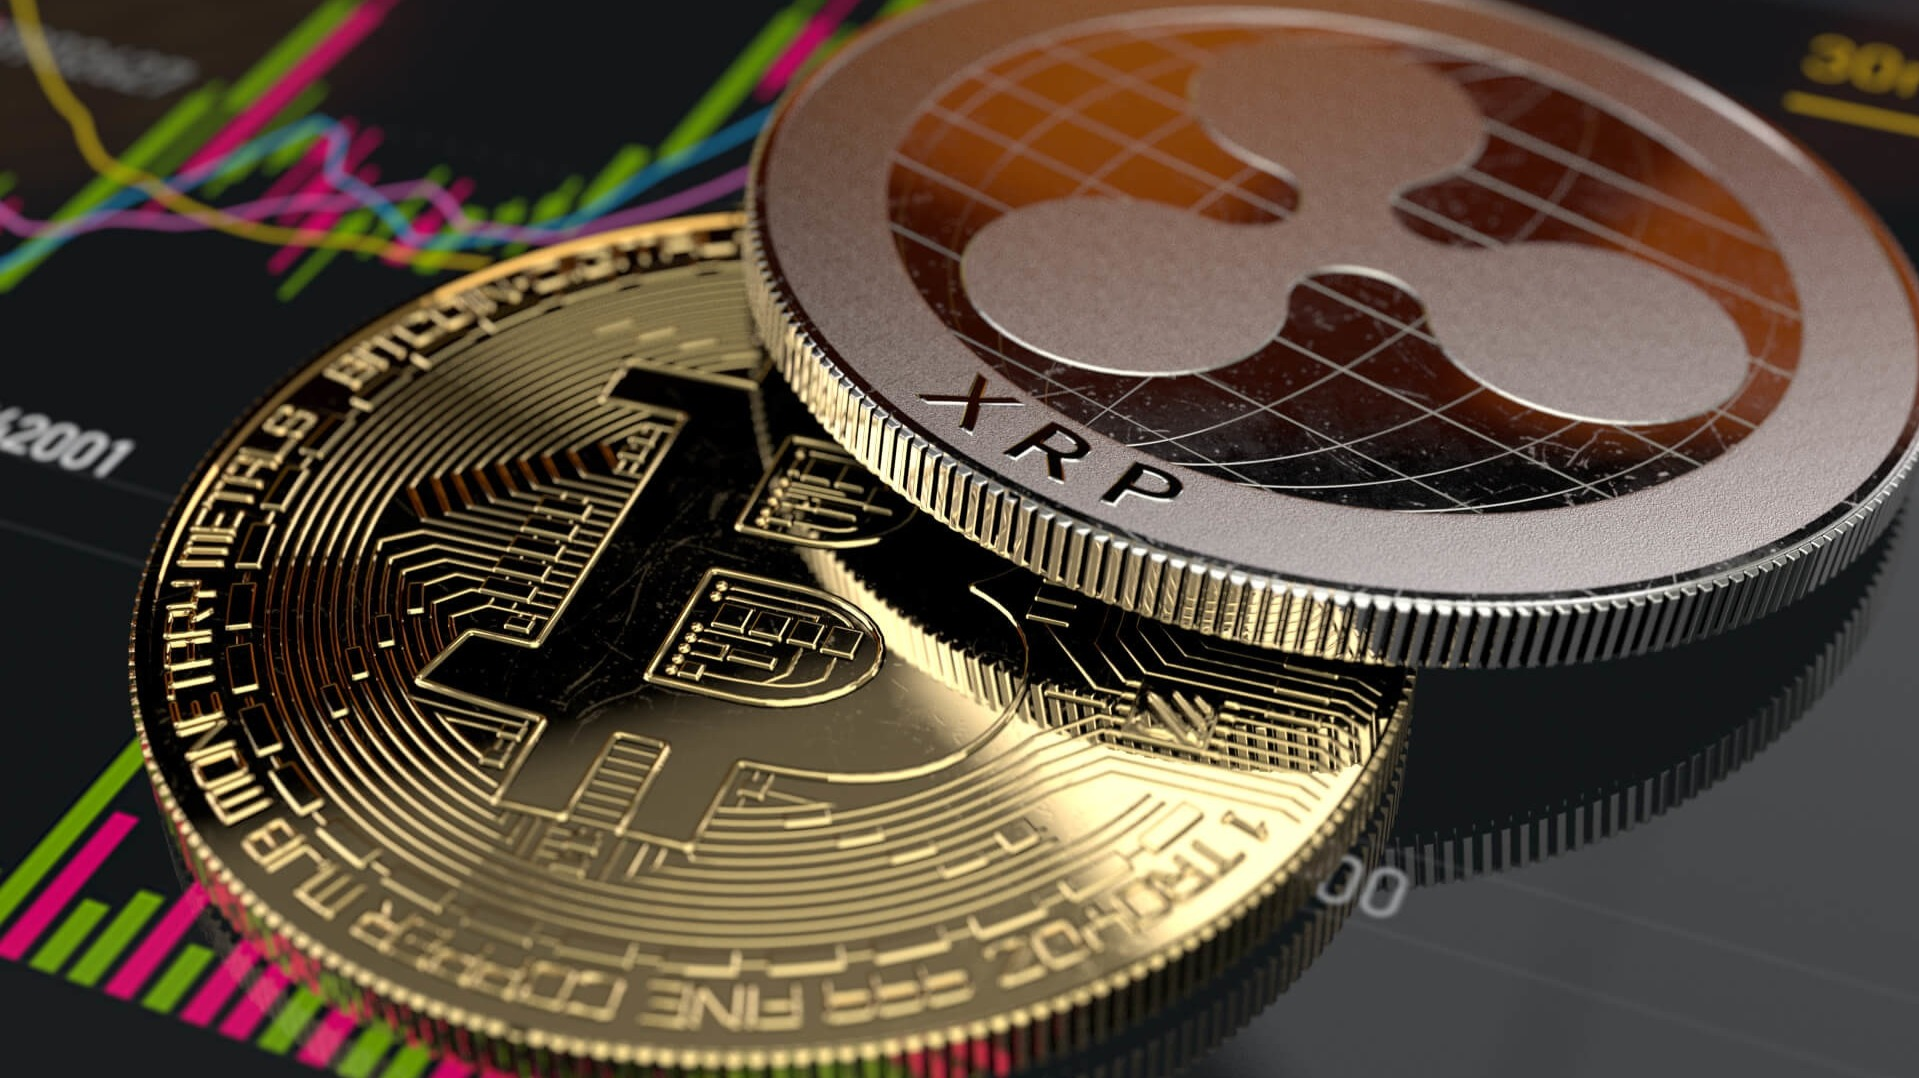 Ripple (XRP) vs Bitcoin (BTC) - The Key Differences You Should Know